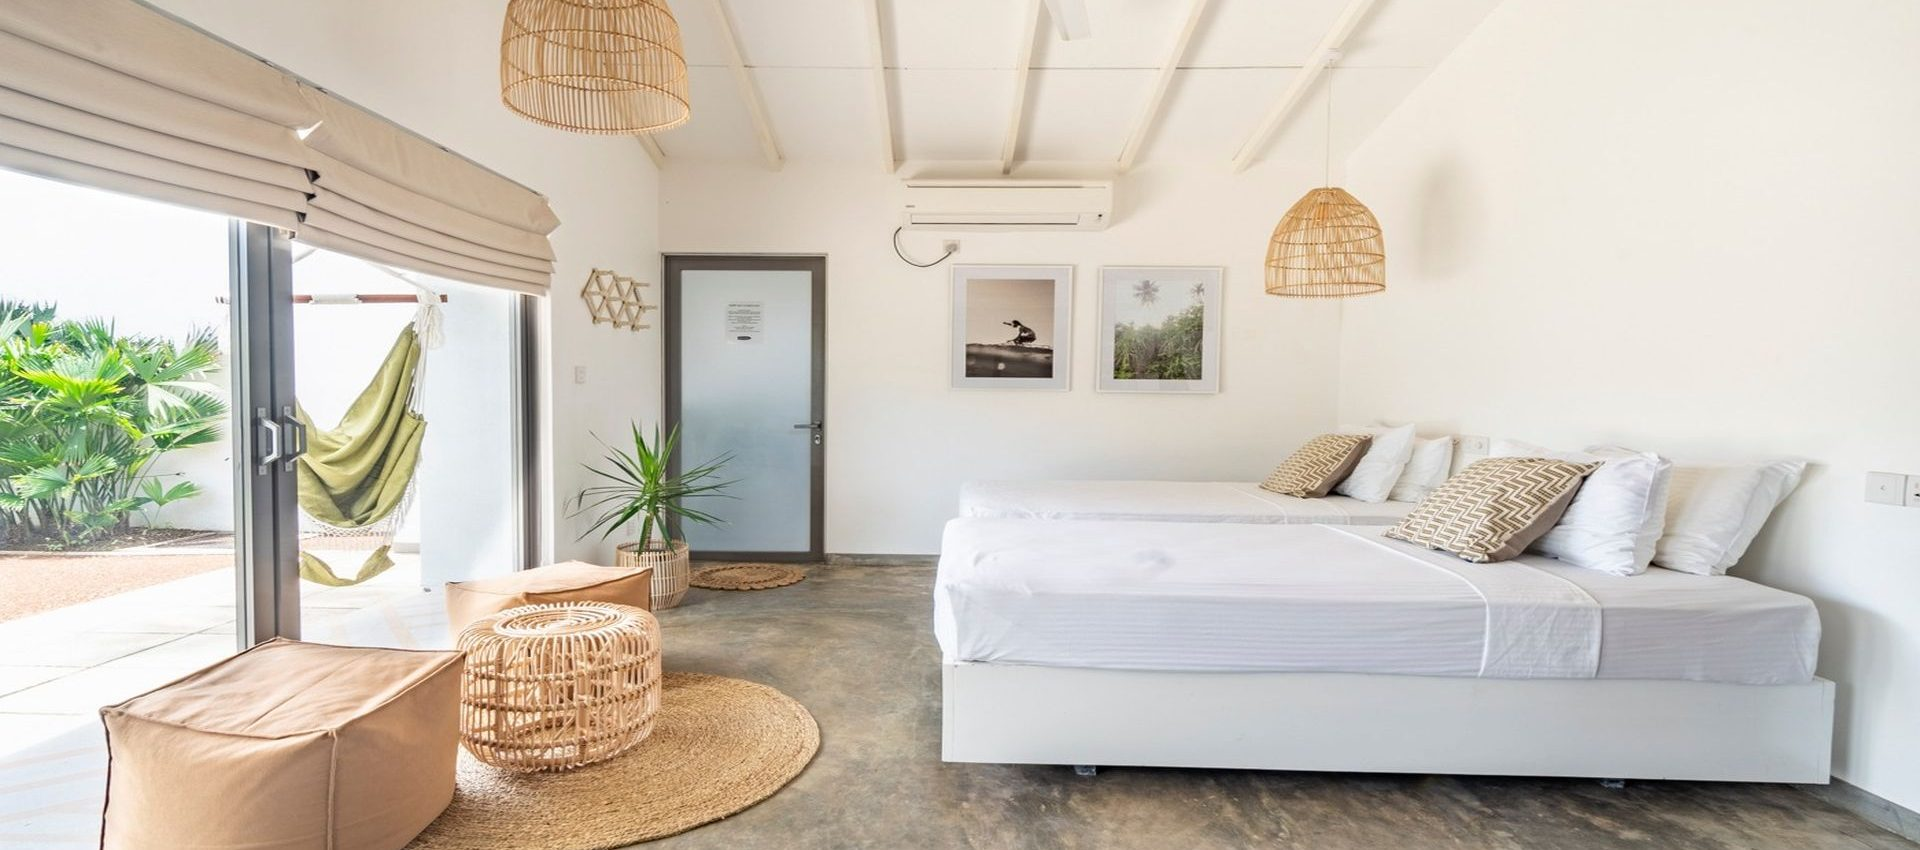 Luxurious boutique chalets for 2 or 4 people